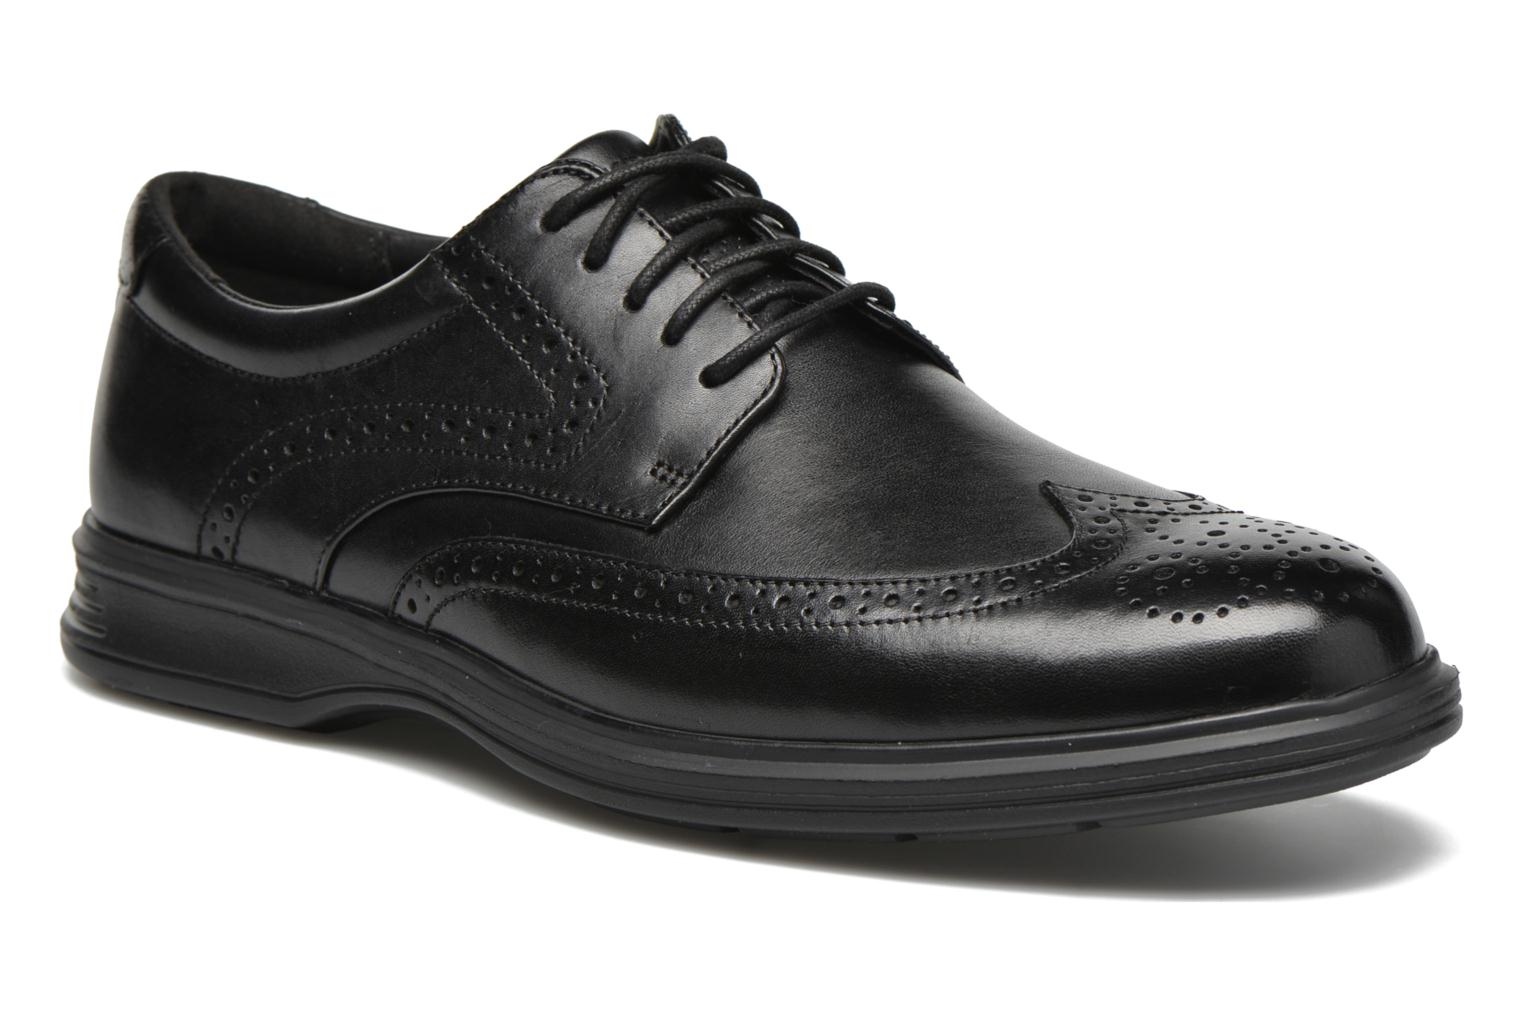 Zapatos con cordones Rockport DP2 Light Wing Tip Negro vista de detalle / par